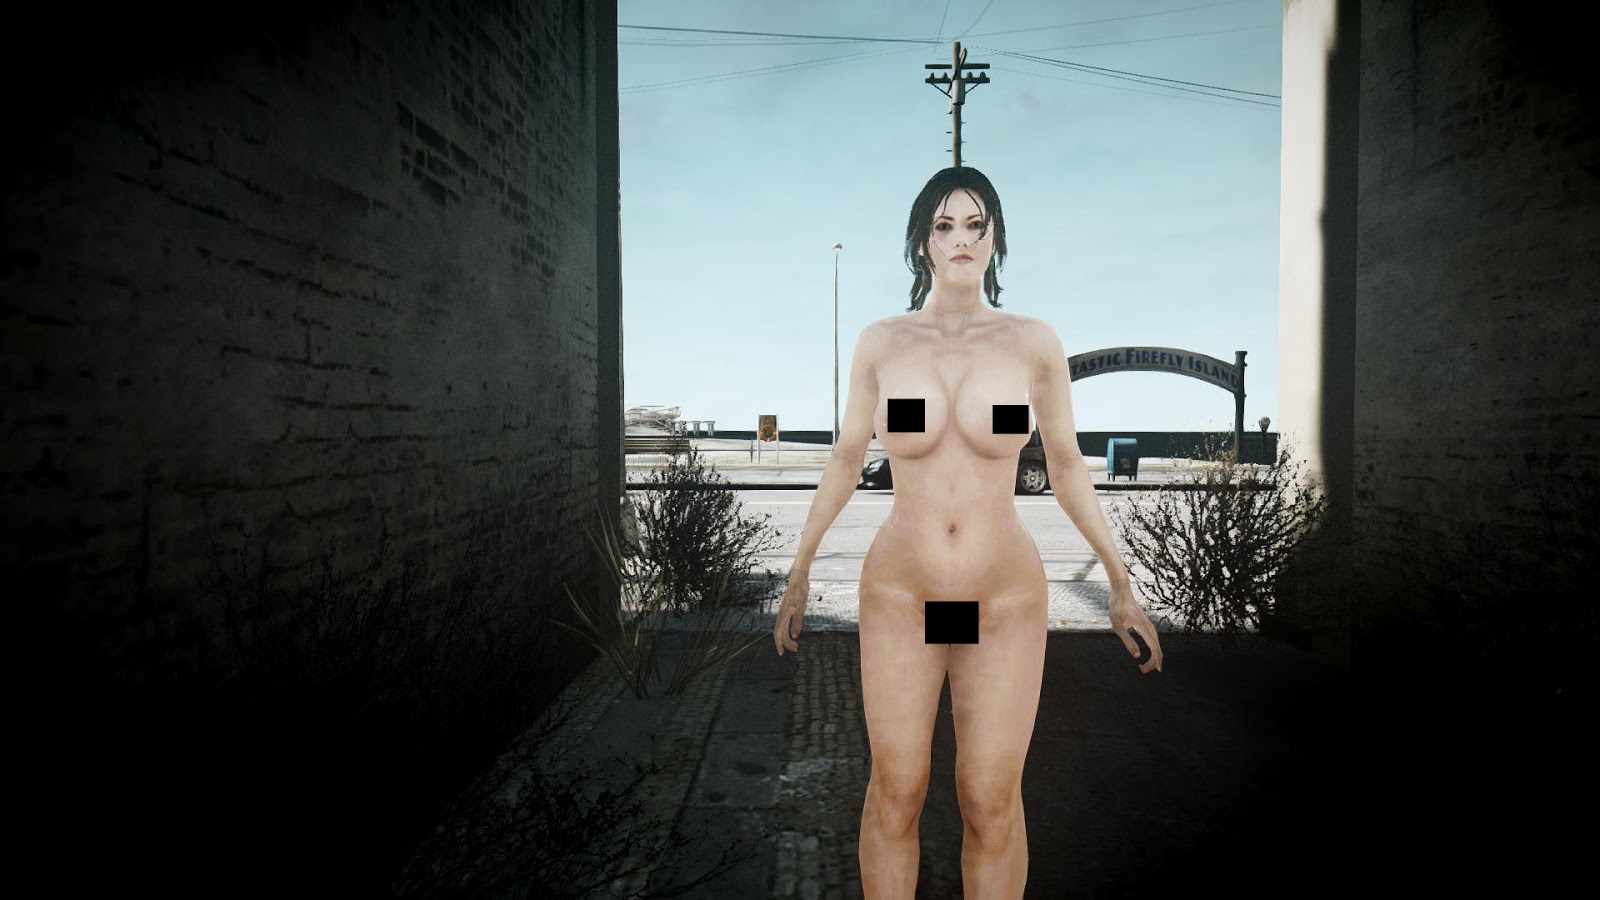 Gta 4 nude girls mod hardcore photos